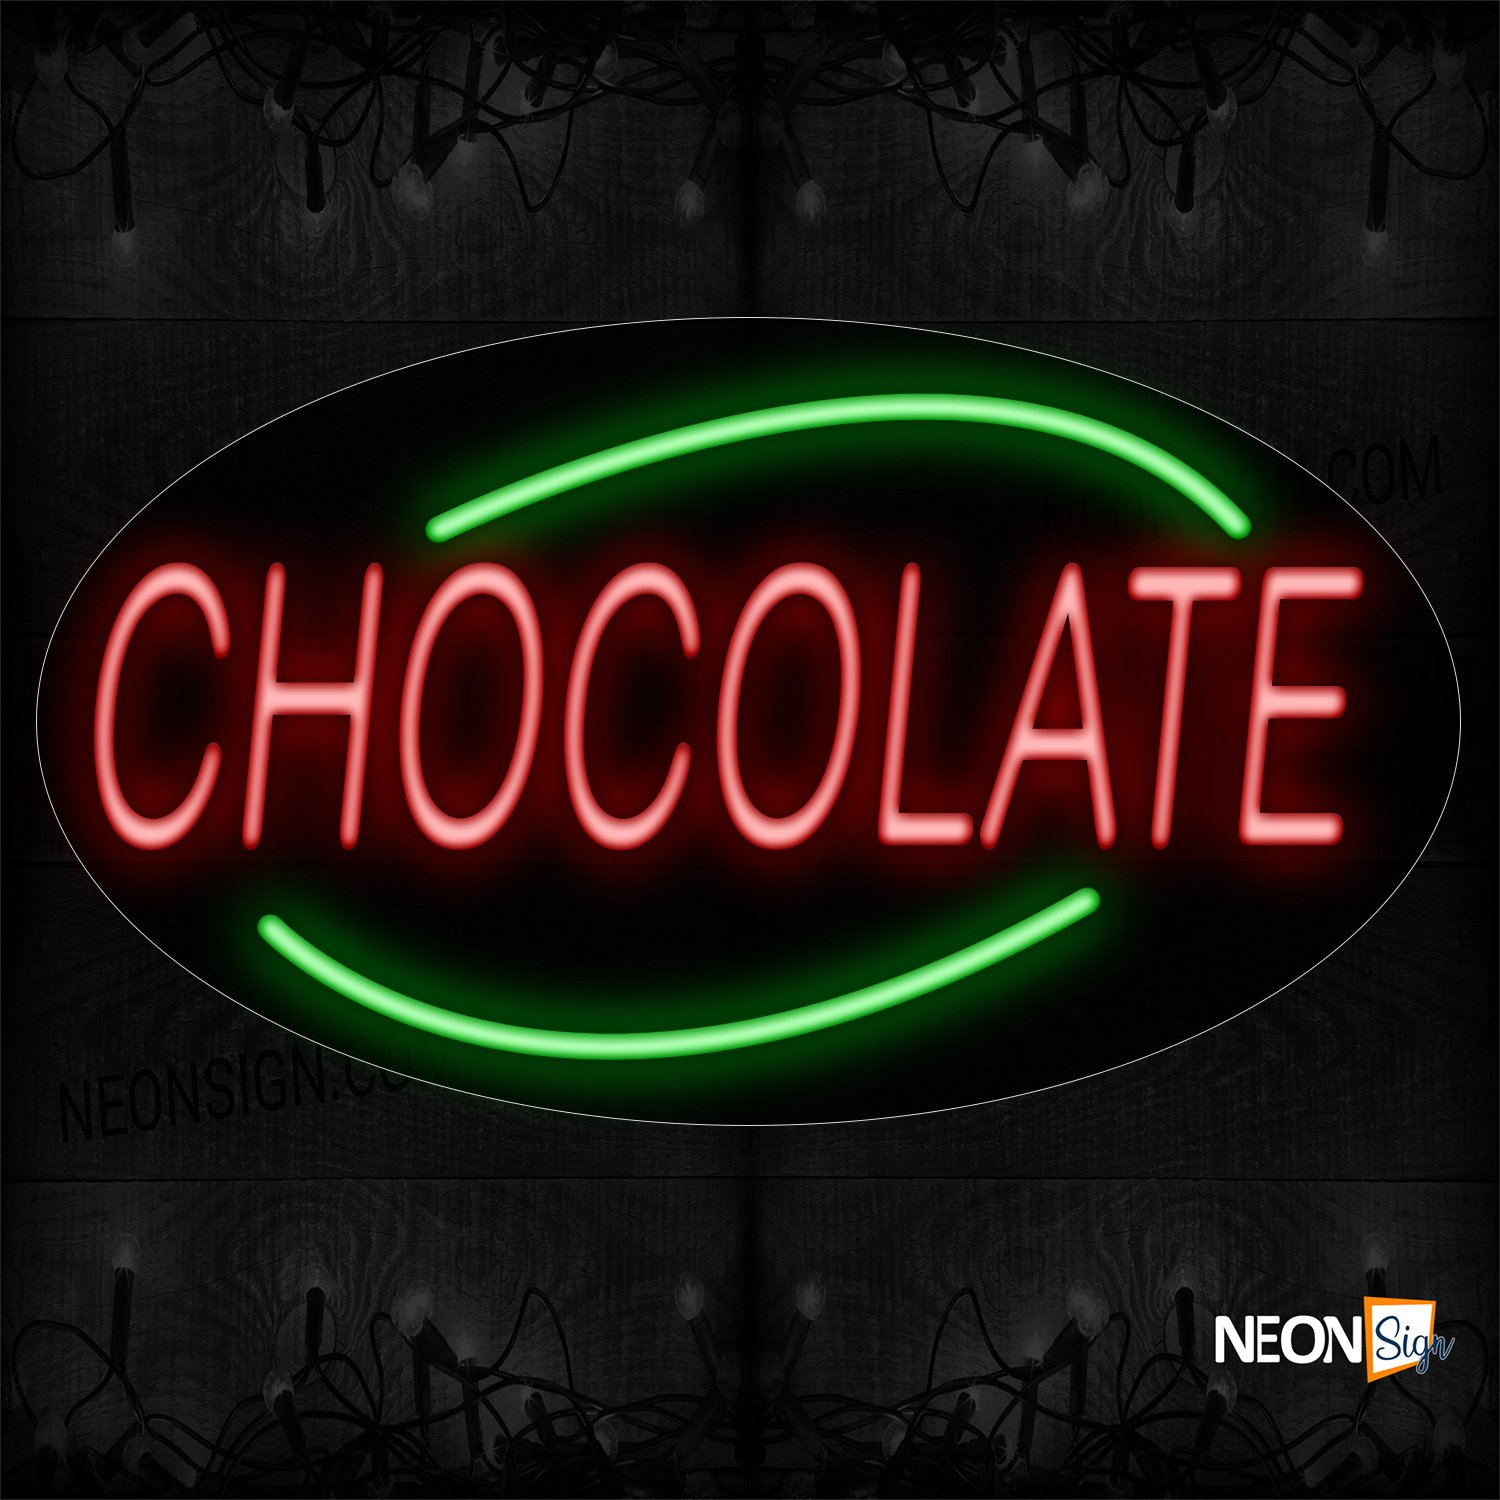 Image of 14332 Chocolate With Arc Border Neon Sign_17x30 Contoured Black Backing